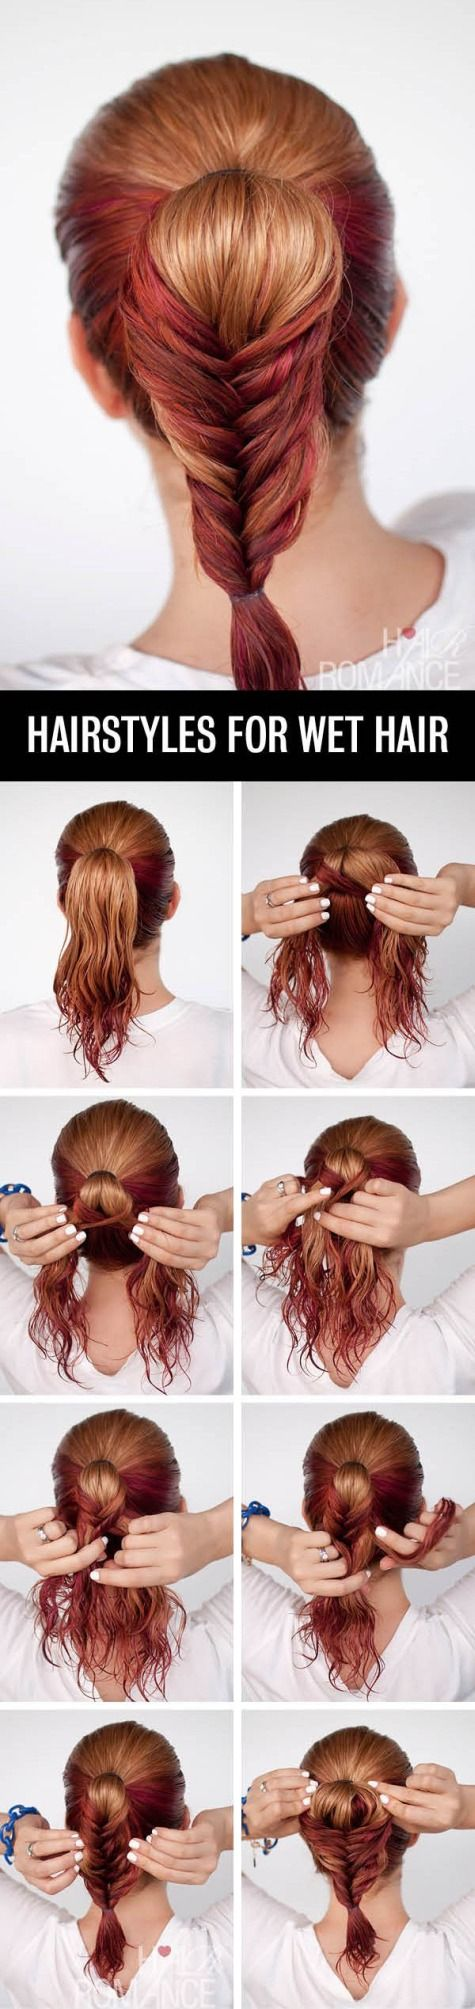 Hairstyles for Wet Hair: 9 Easy Hairstyle Tutorials For Every Occasion